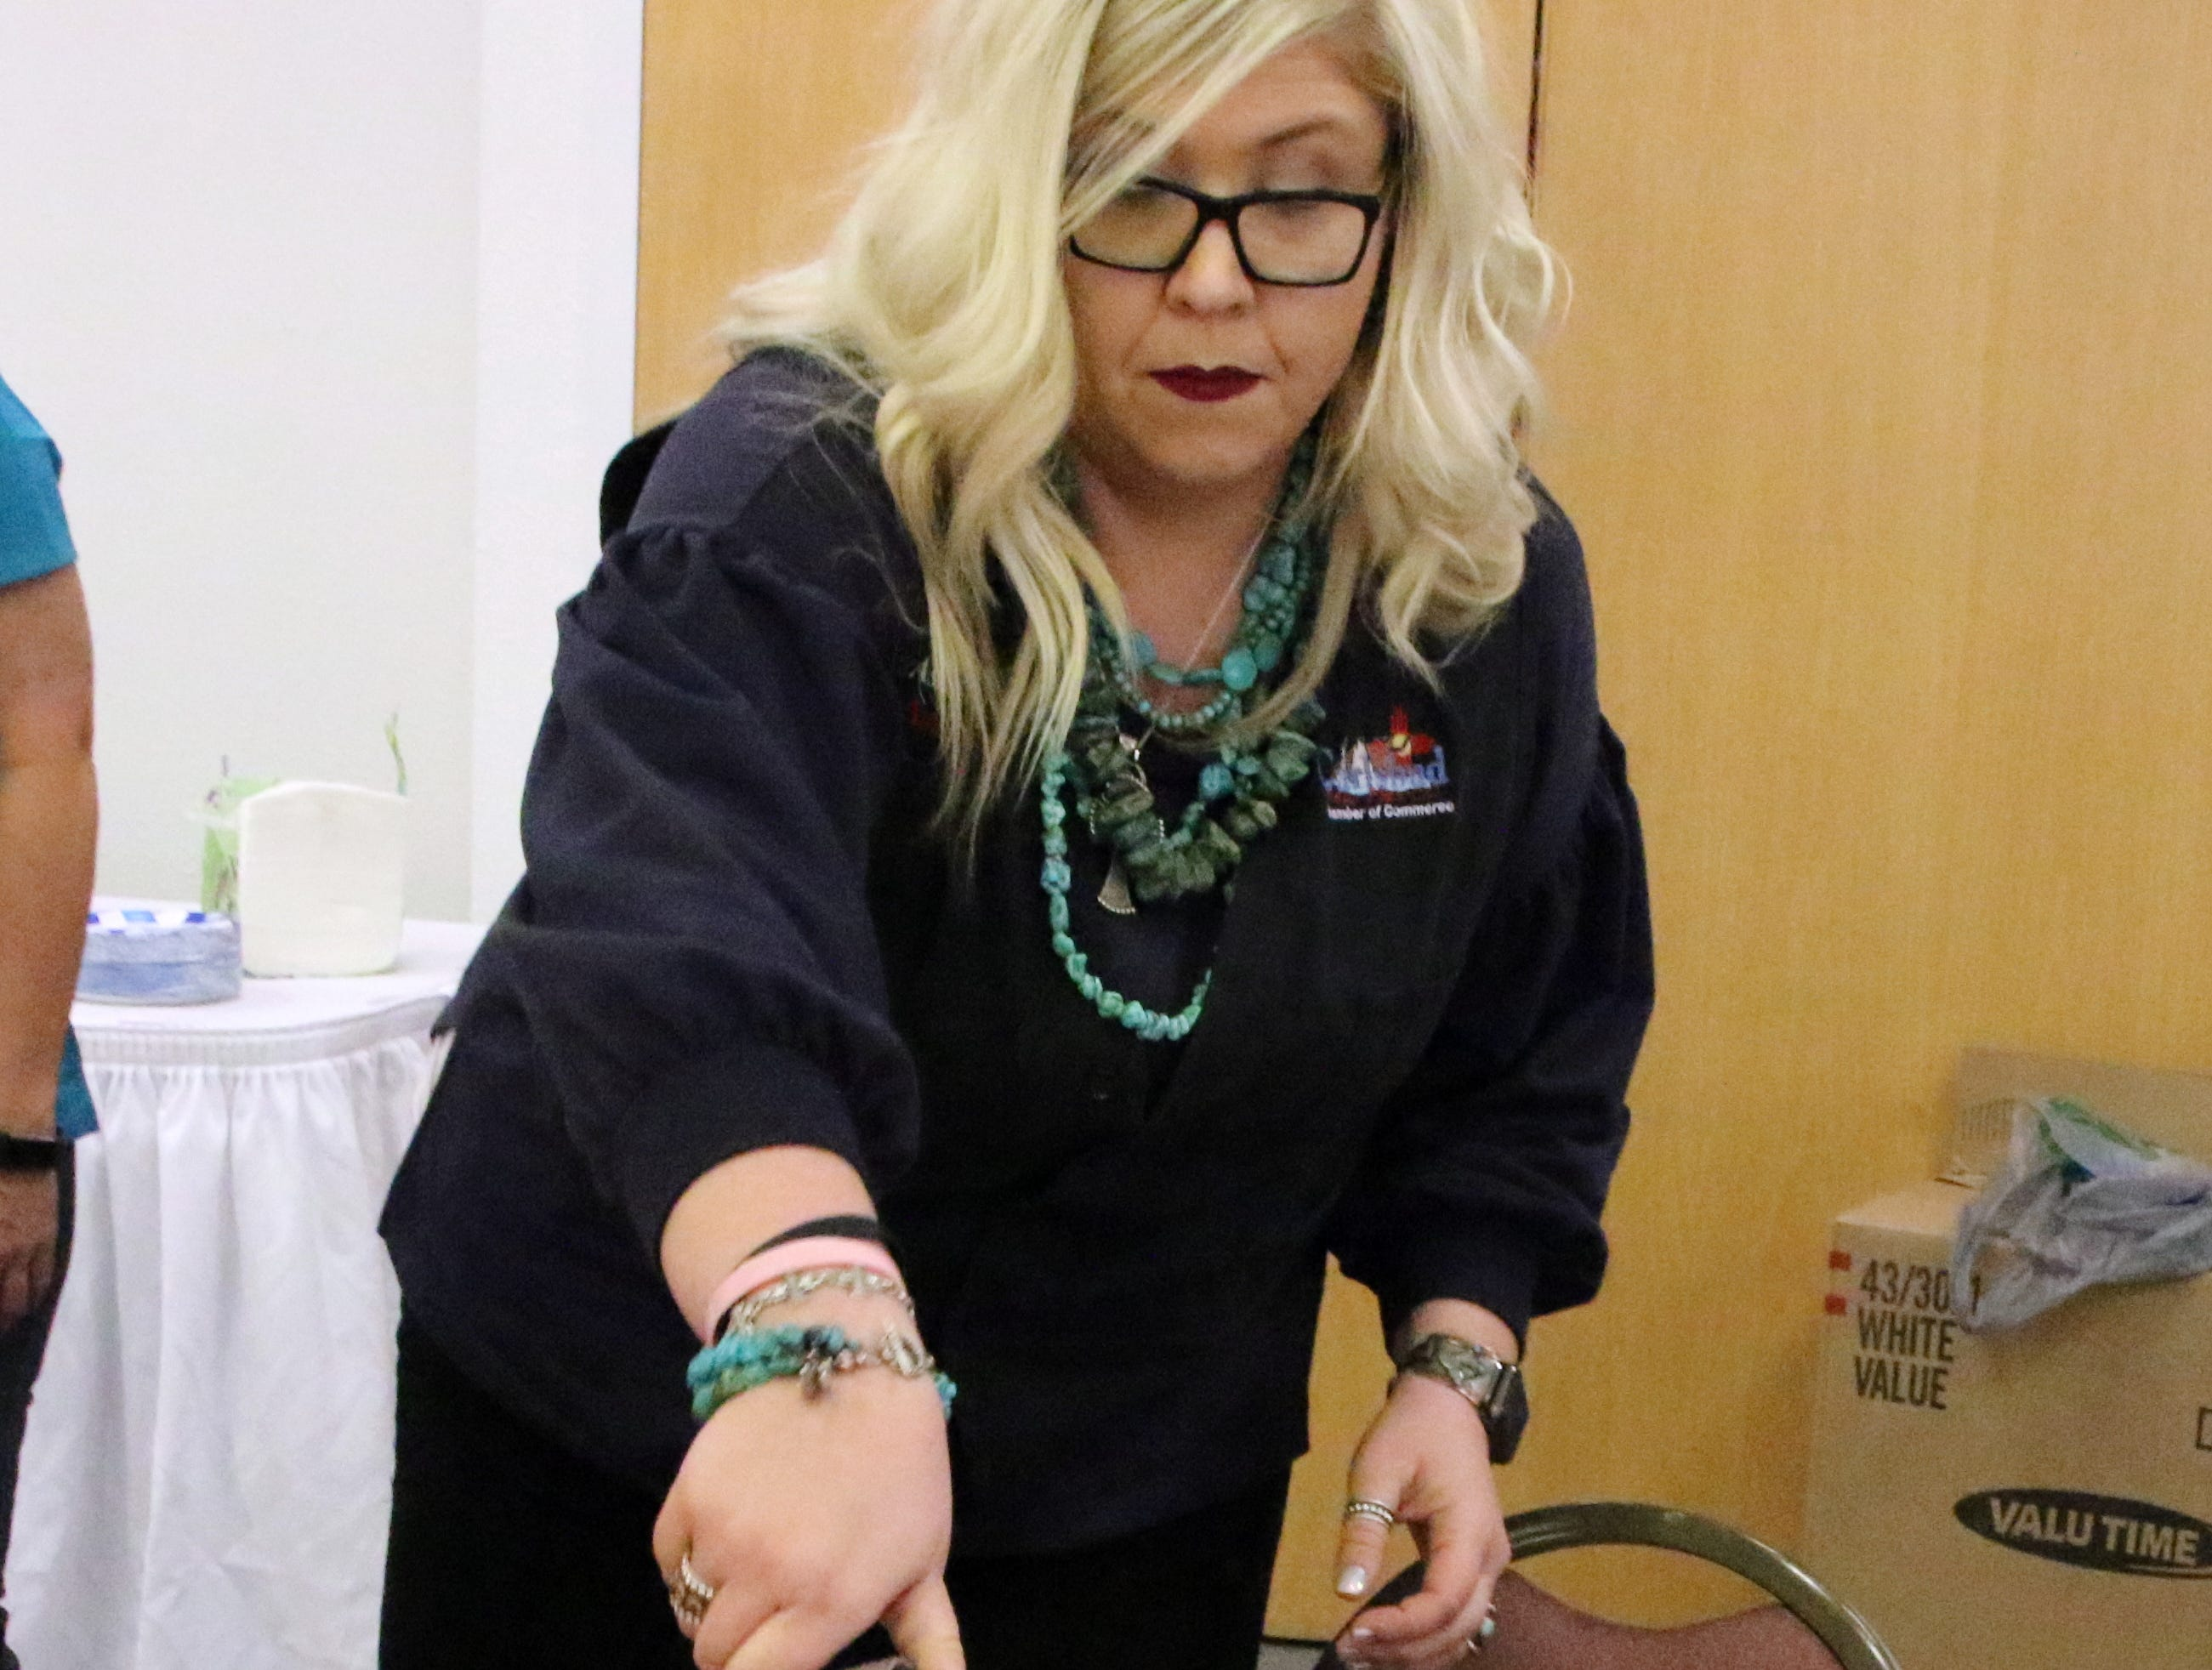 Ashley Switzer pours out a serving of the crawfish boil dinner during Monday's NCAA Championship game at the Pecos River Village Conference Center.